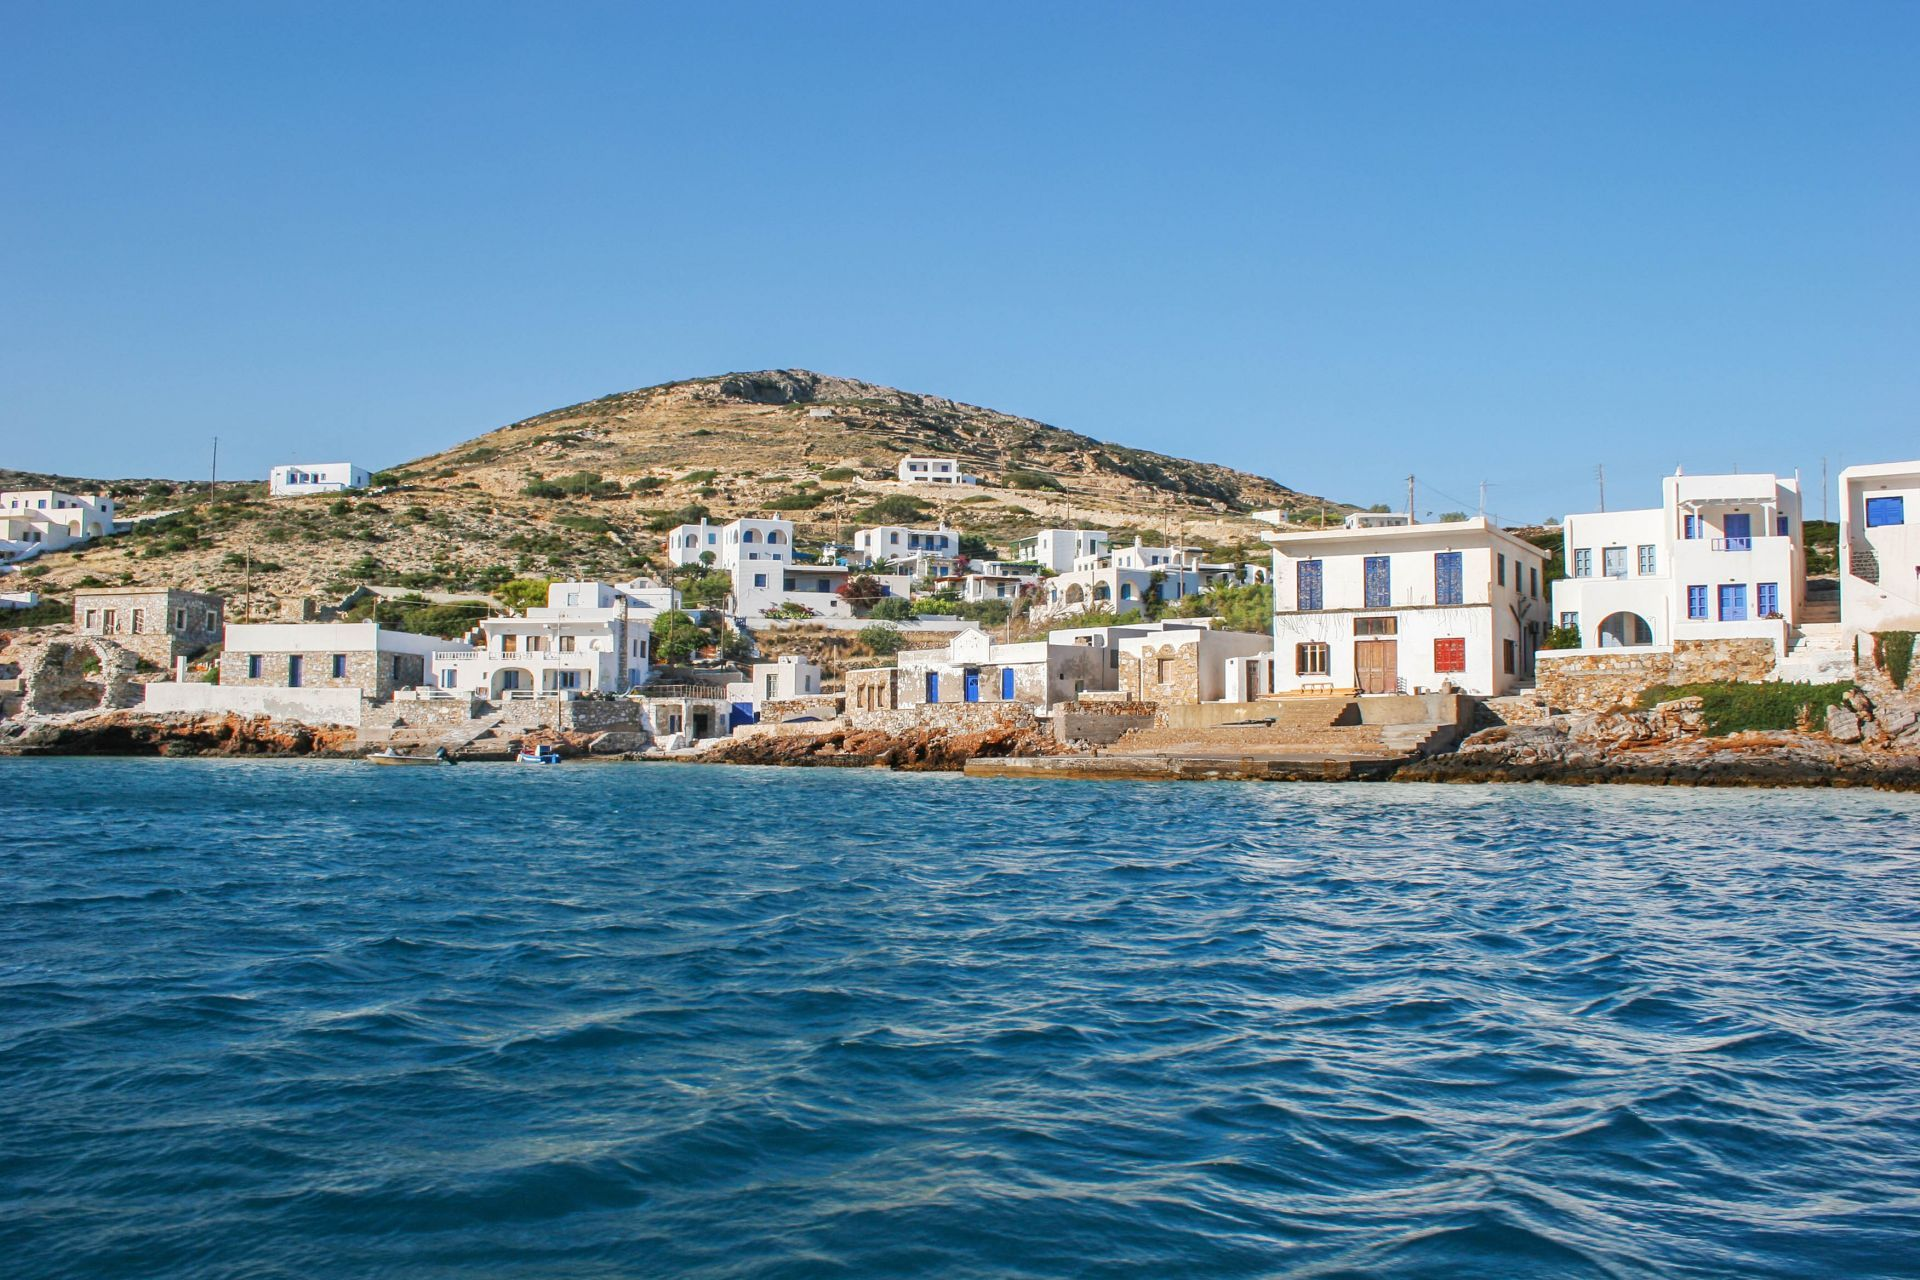 Accommodation and hotels in Sikinos